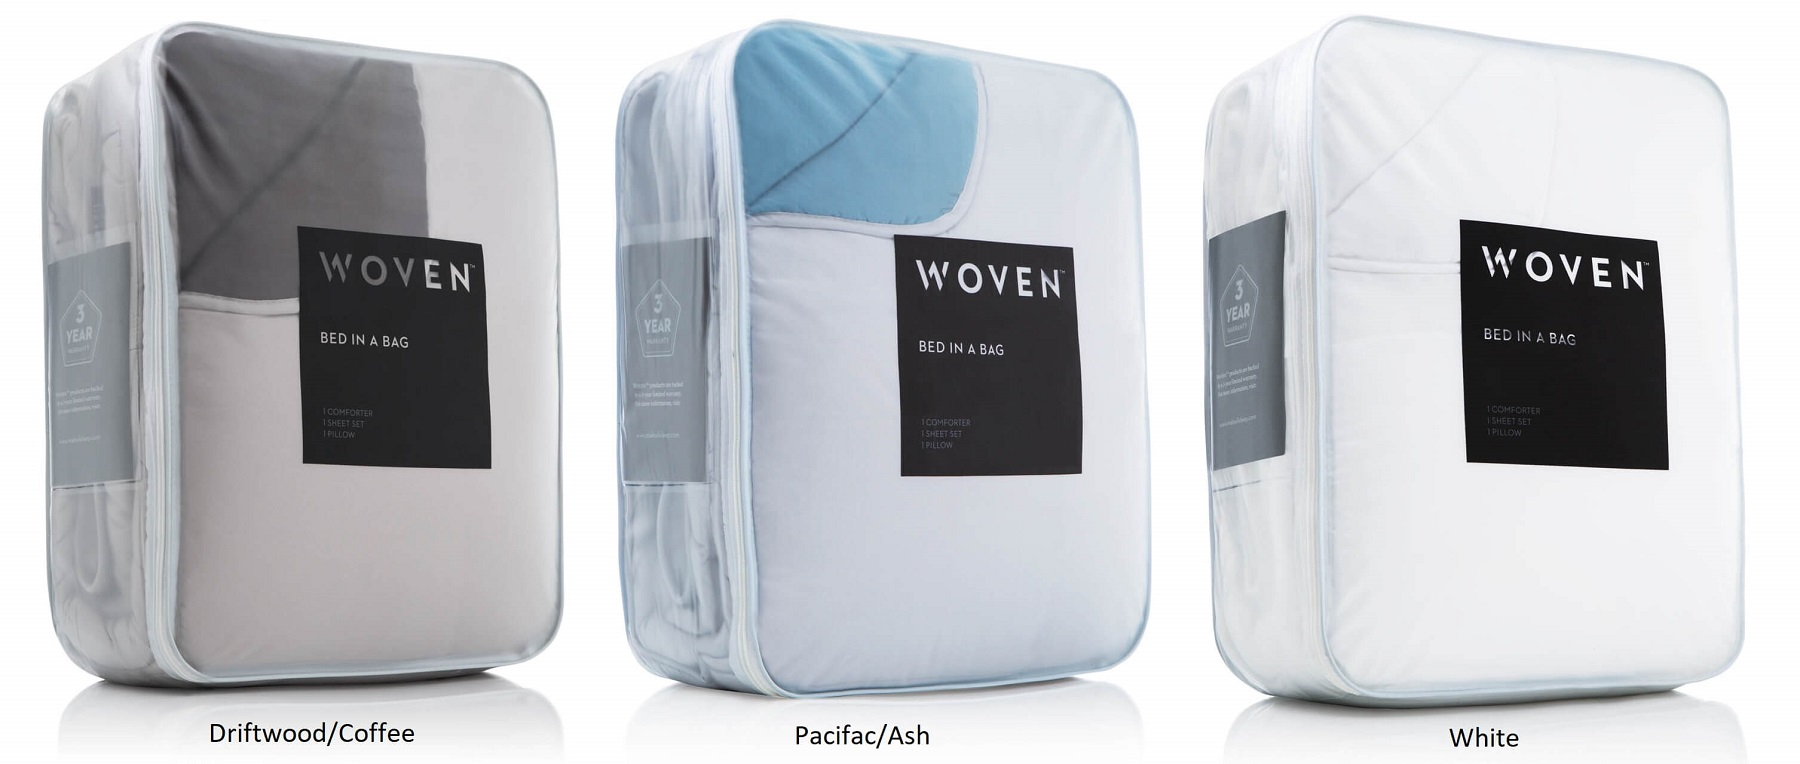 Bed In A Bag color options